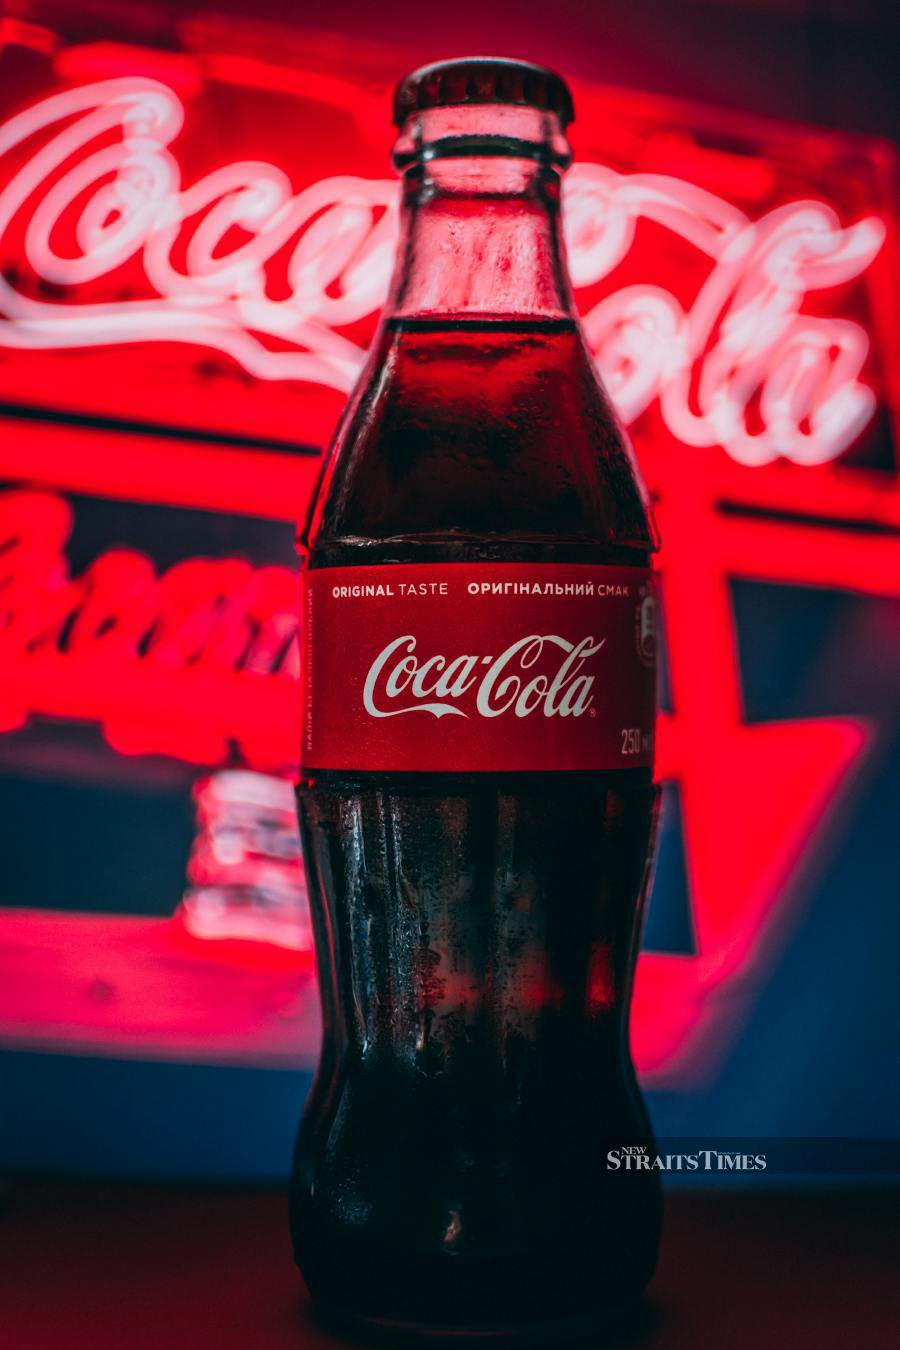 The Coca-Cola distinctive logo can be spotted everywhere.